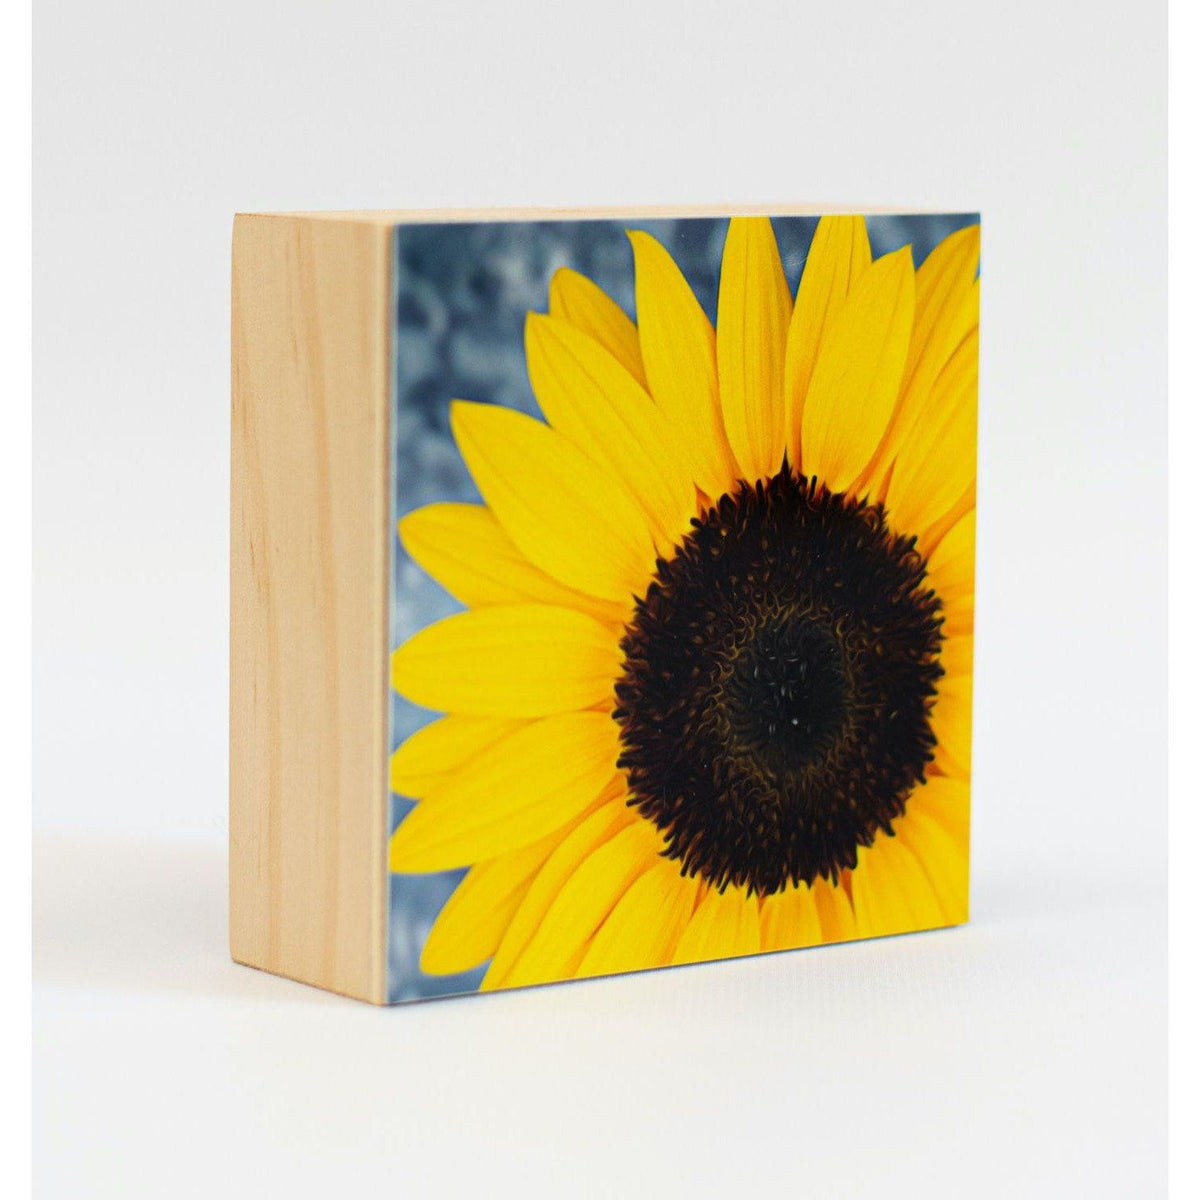 Sunflower Aluminum Photo on Wood Block art print ANVIL metals studio